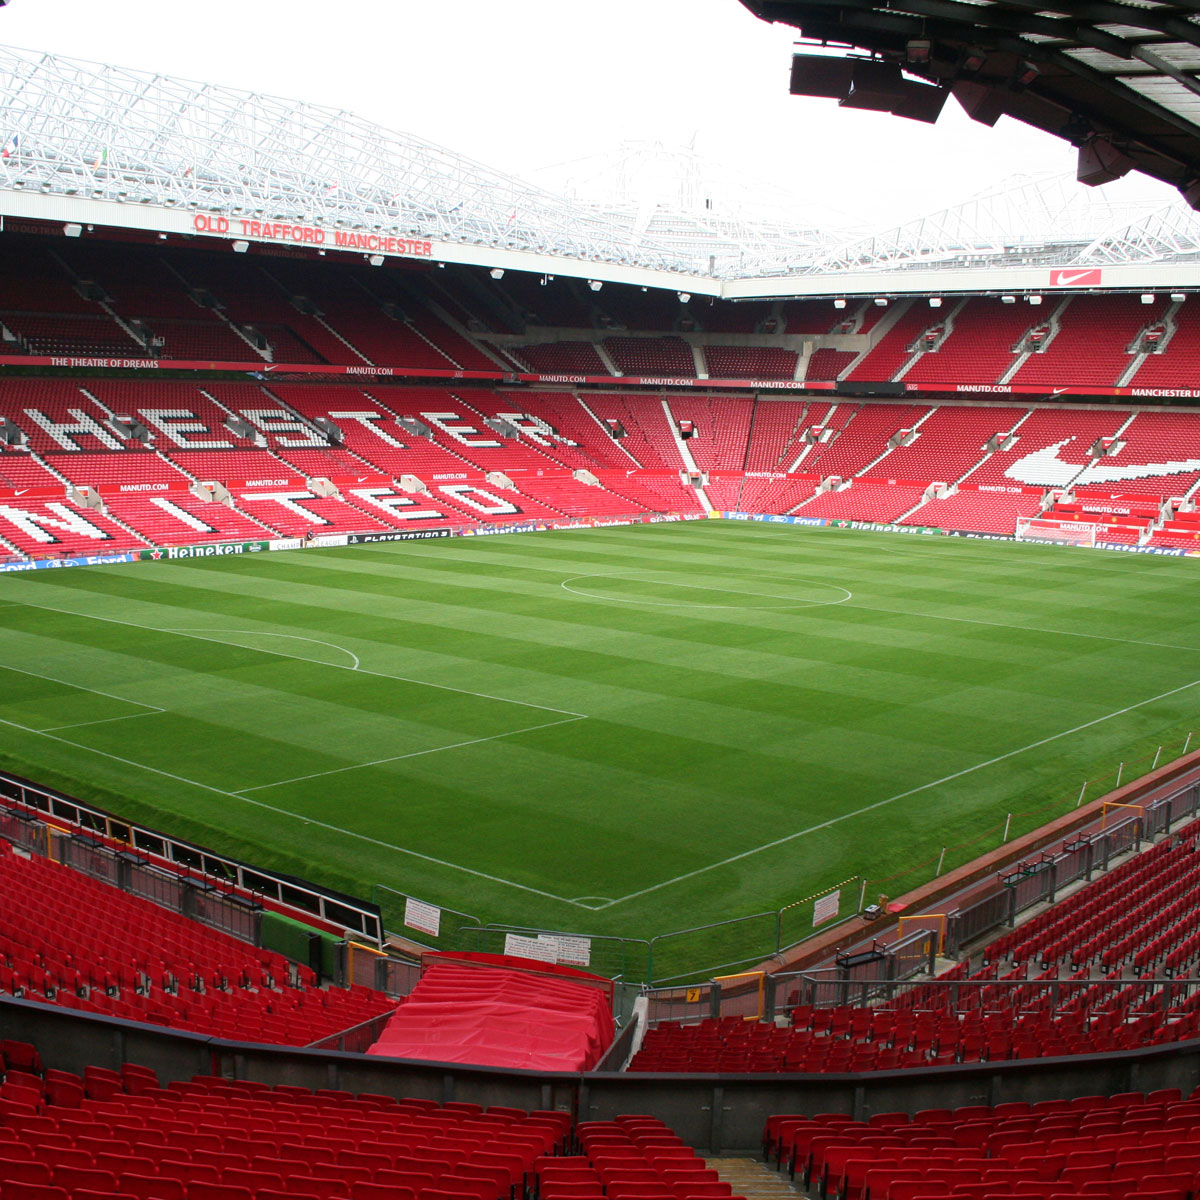 Adult Stadium Tour of Old Trafford